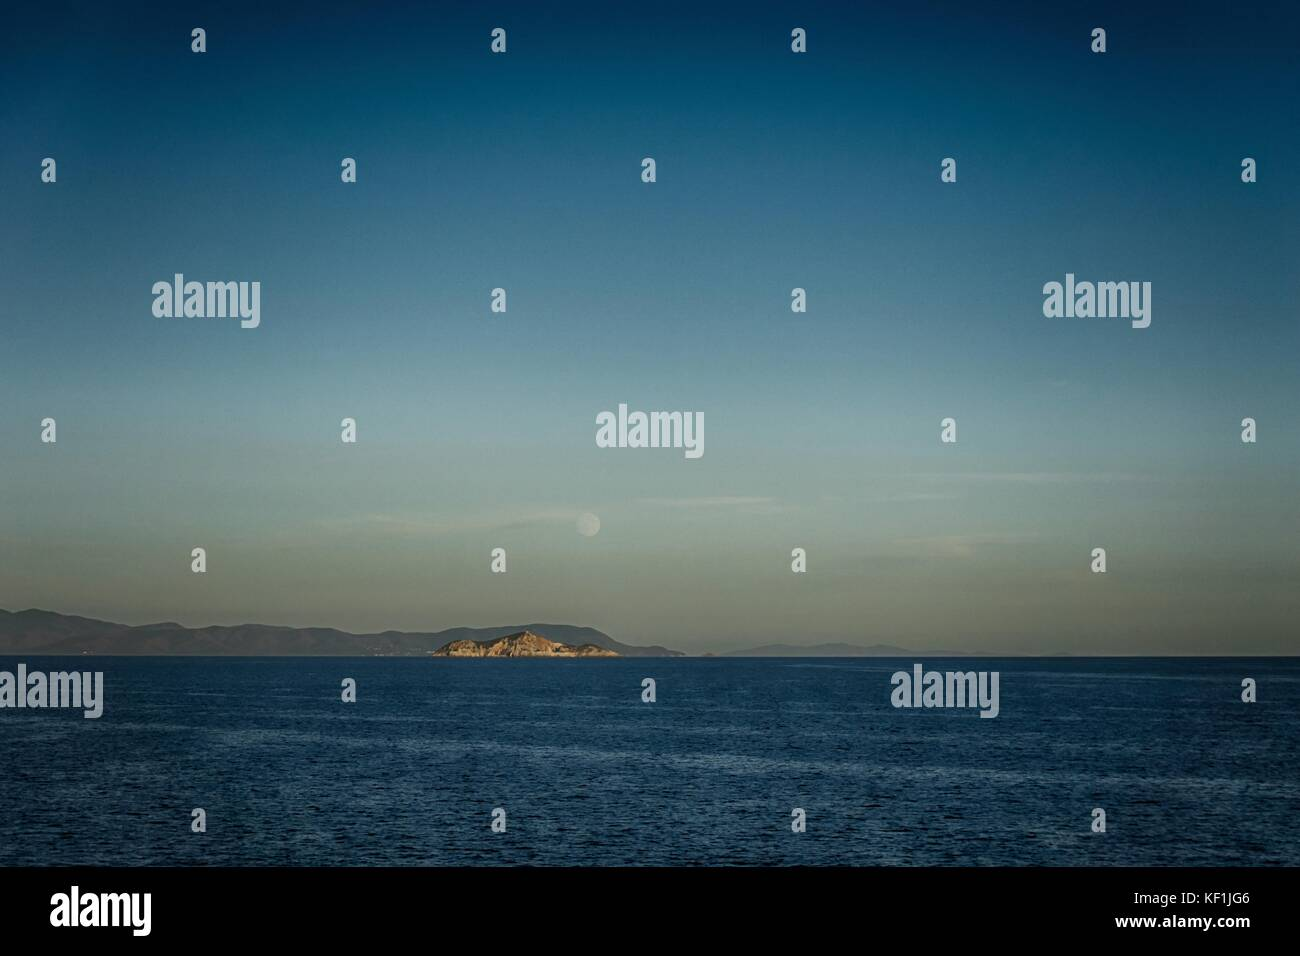 Horizontal vintage photo of small rock or island with moon above in Mediterranean Sea with Tuscany coastline in - Stock Image